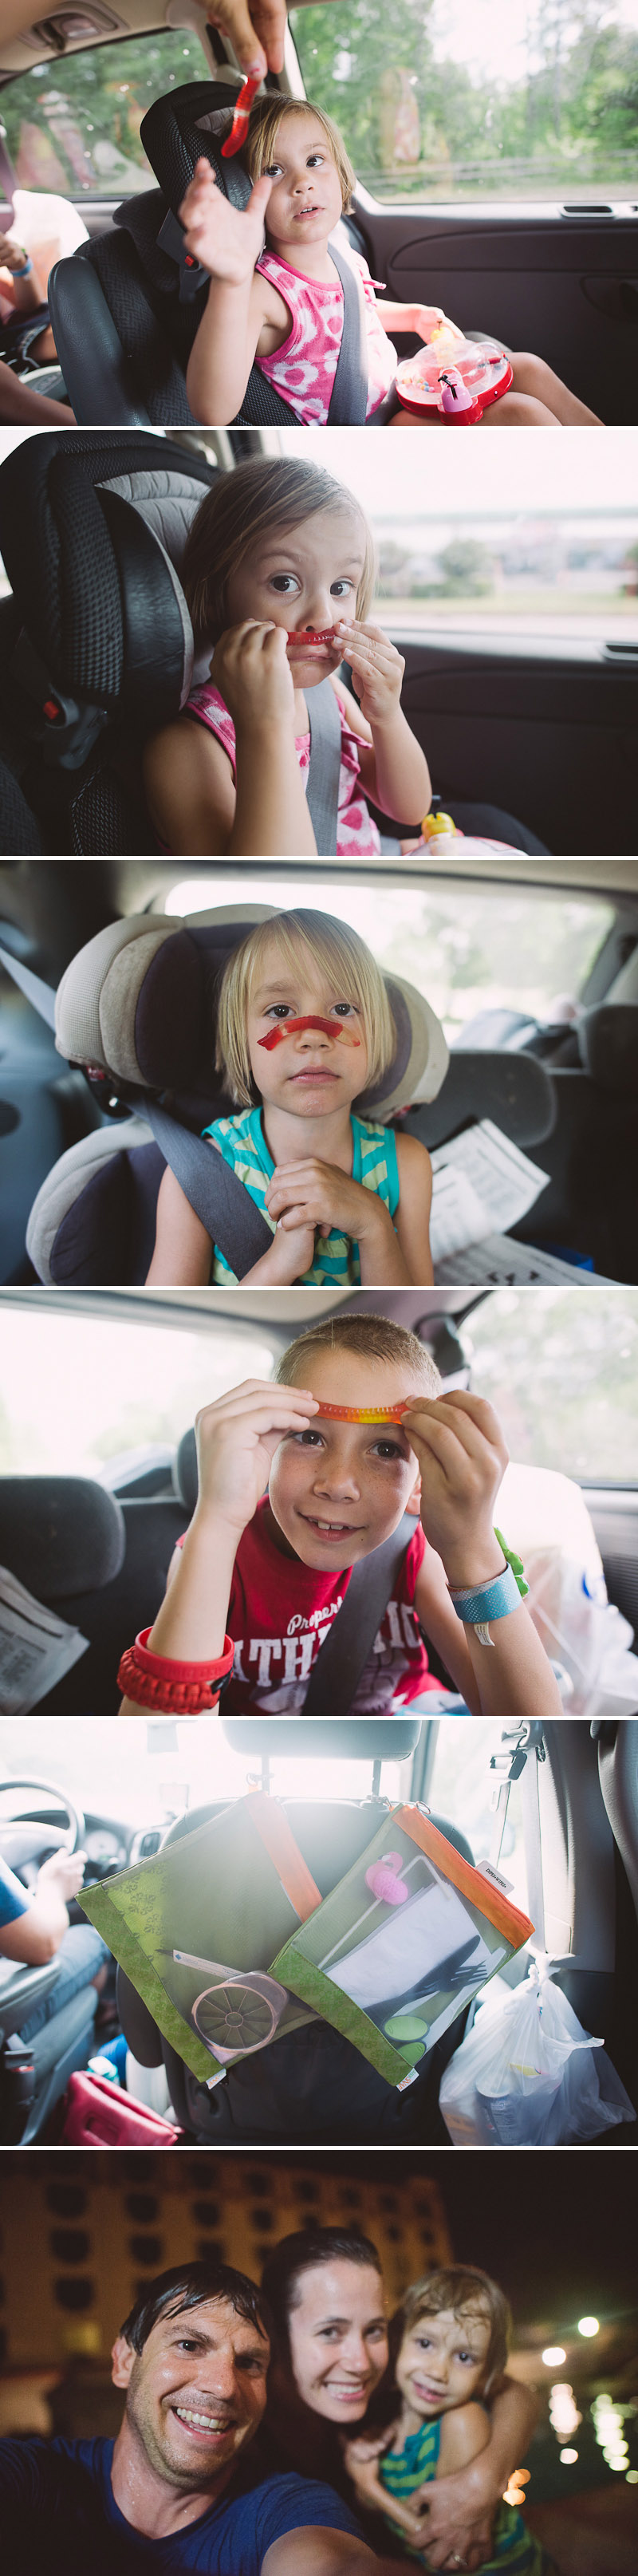 Kids having fun in the car.